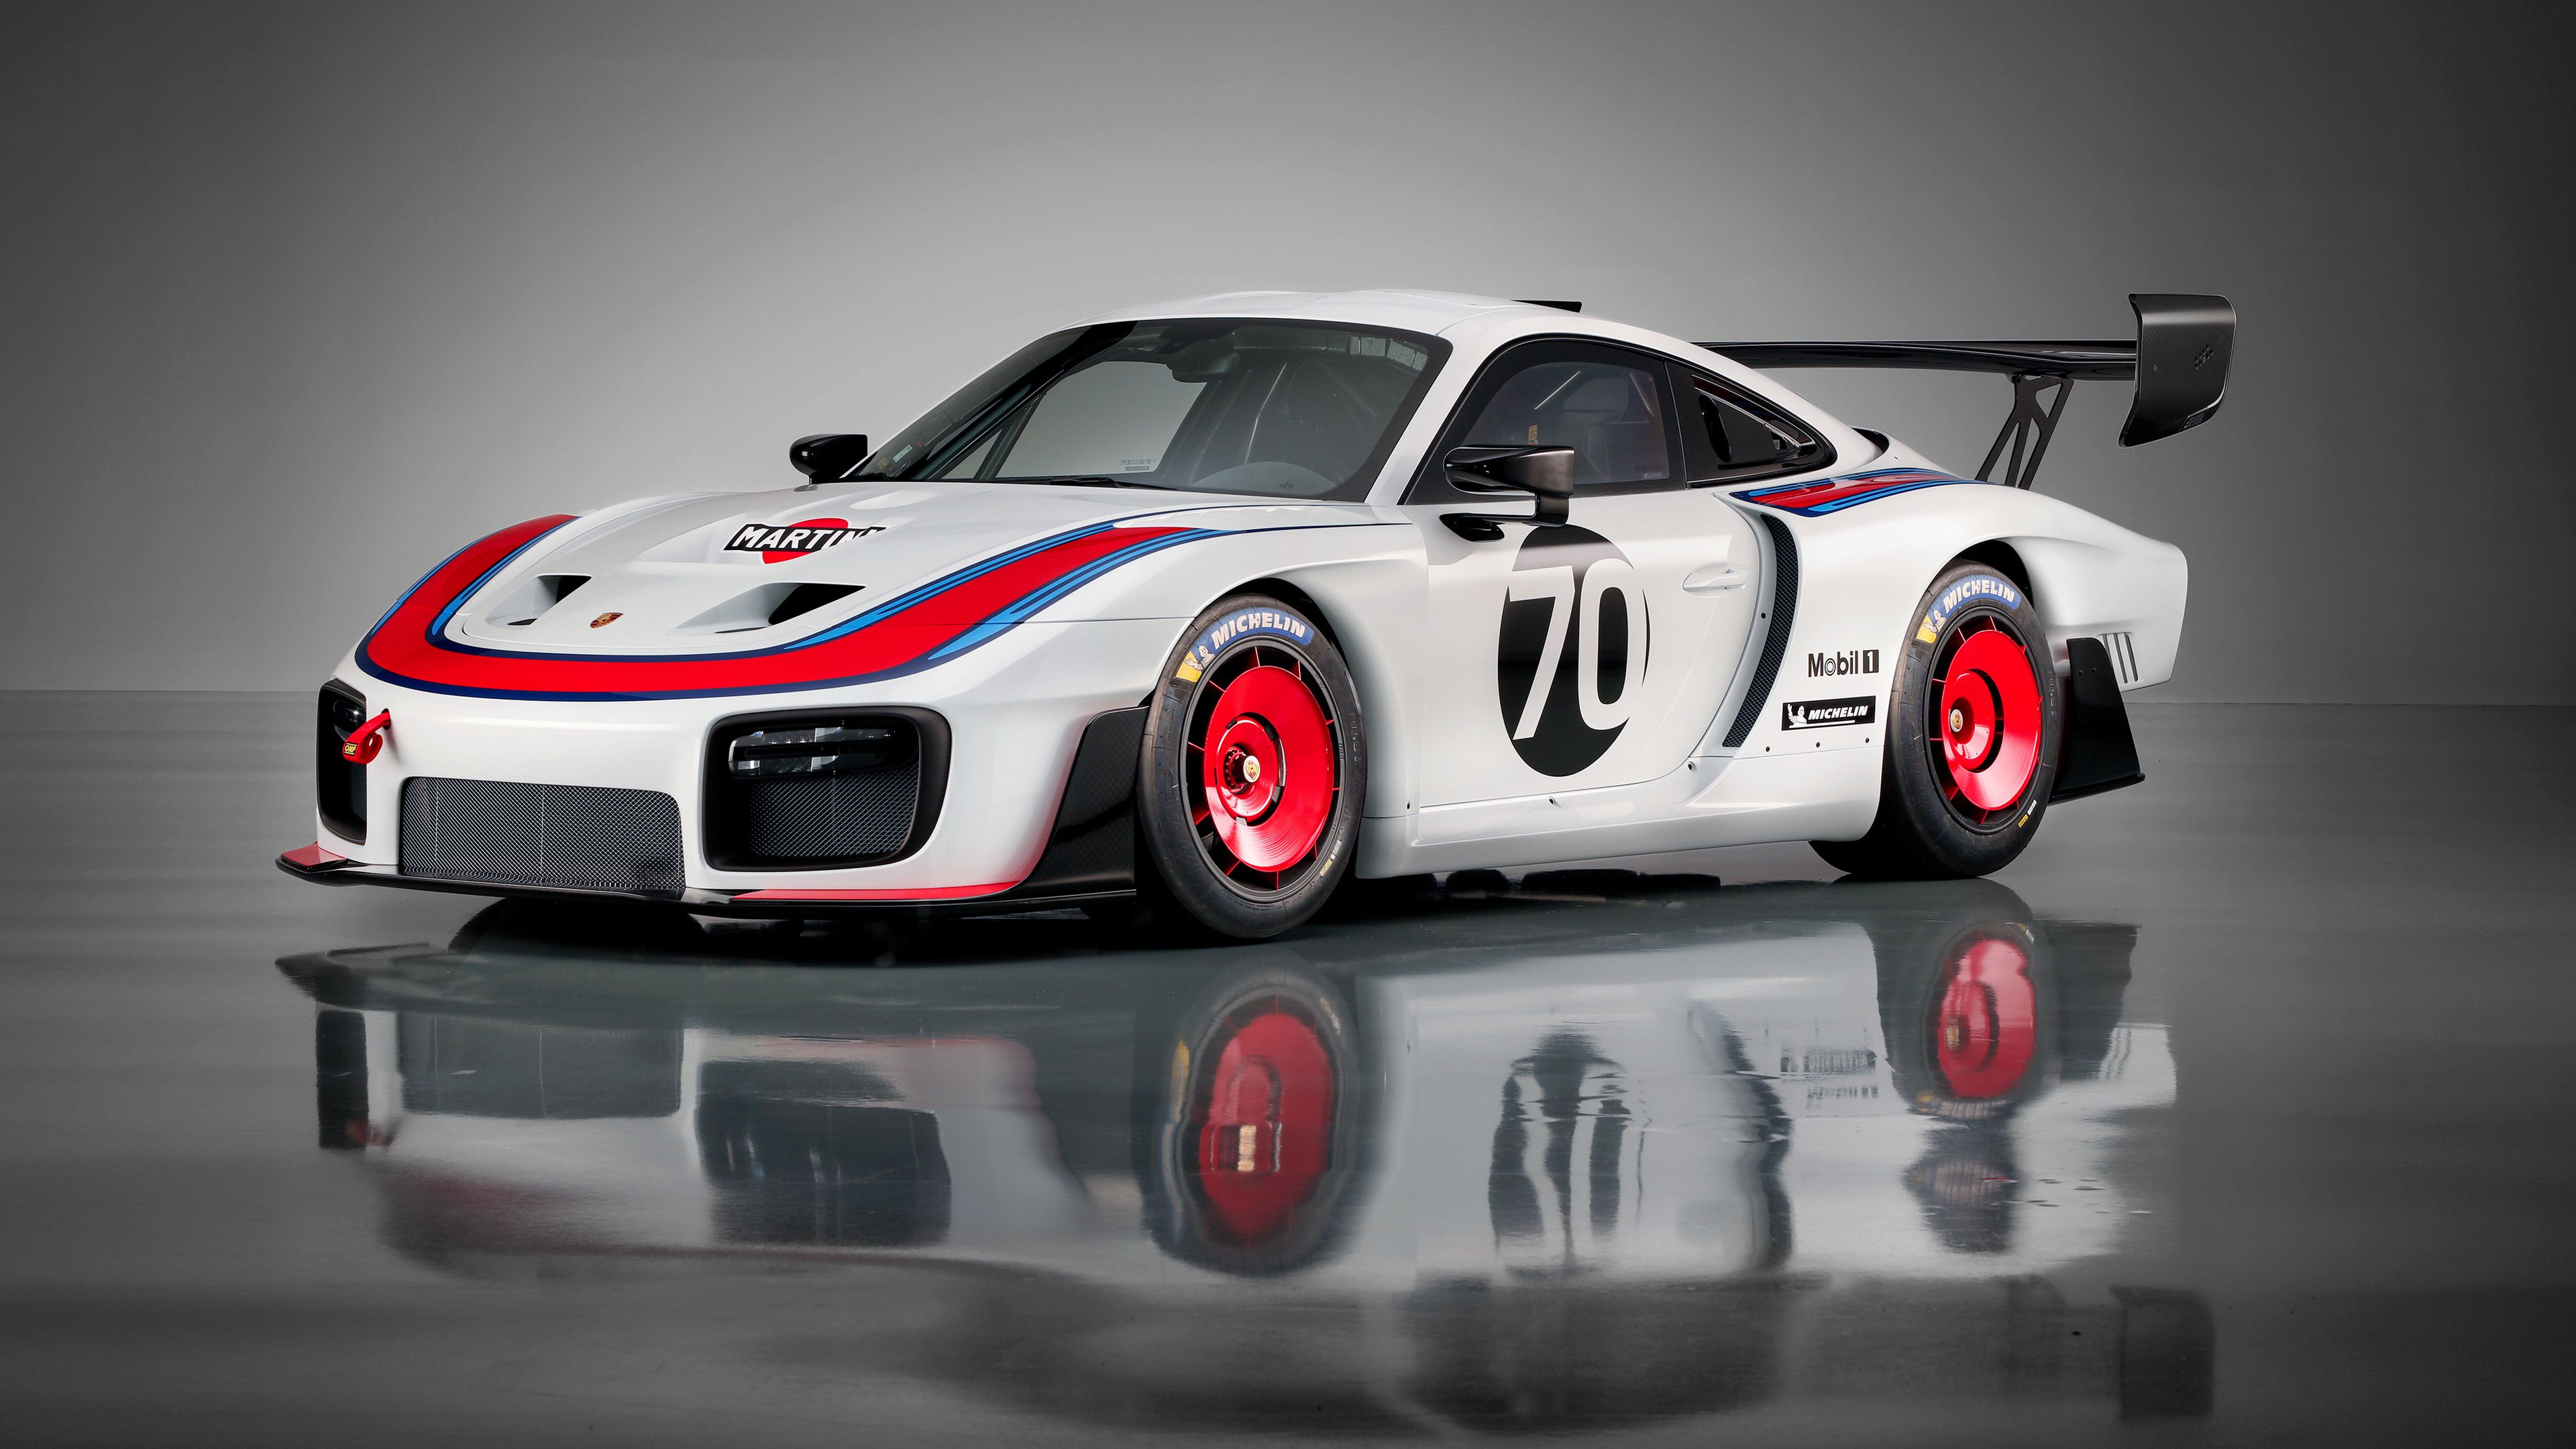 Wallpaper 4k Porsche 935 2019 2019 Cars Wallpapers 4k Wallpapers Cars Wallpapers Hd Wallpapers Porsche 935 Wallpapers Porsche Wallpapers Porsche 935 Porsche Yaris Arabasi